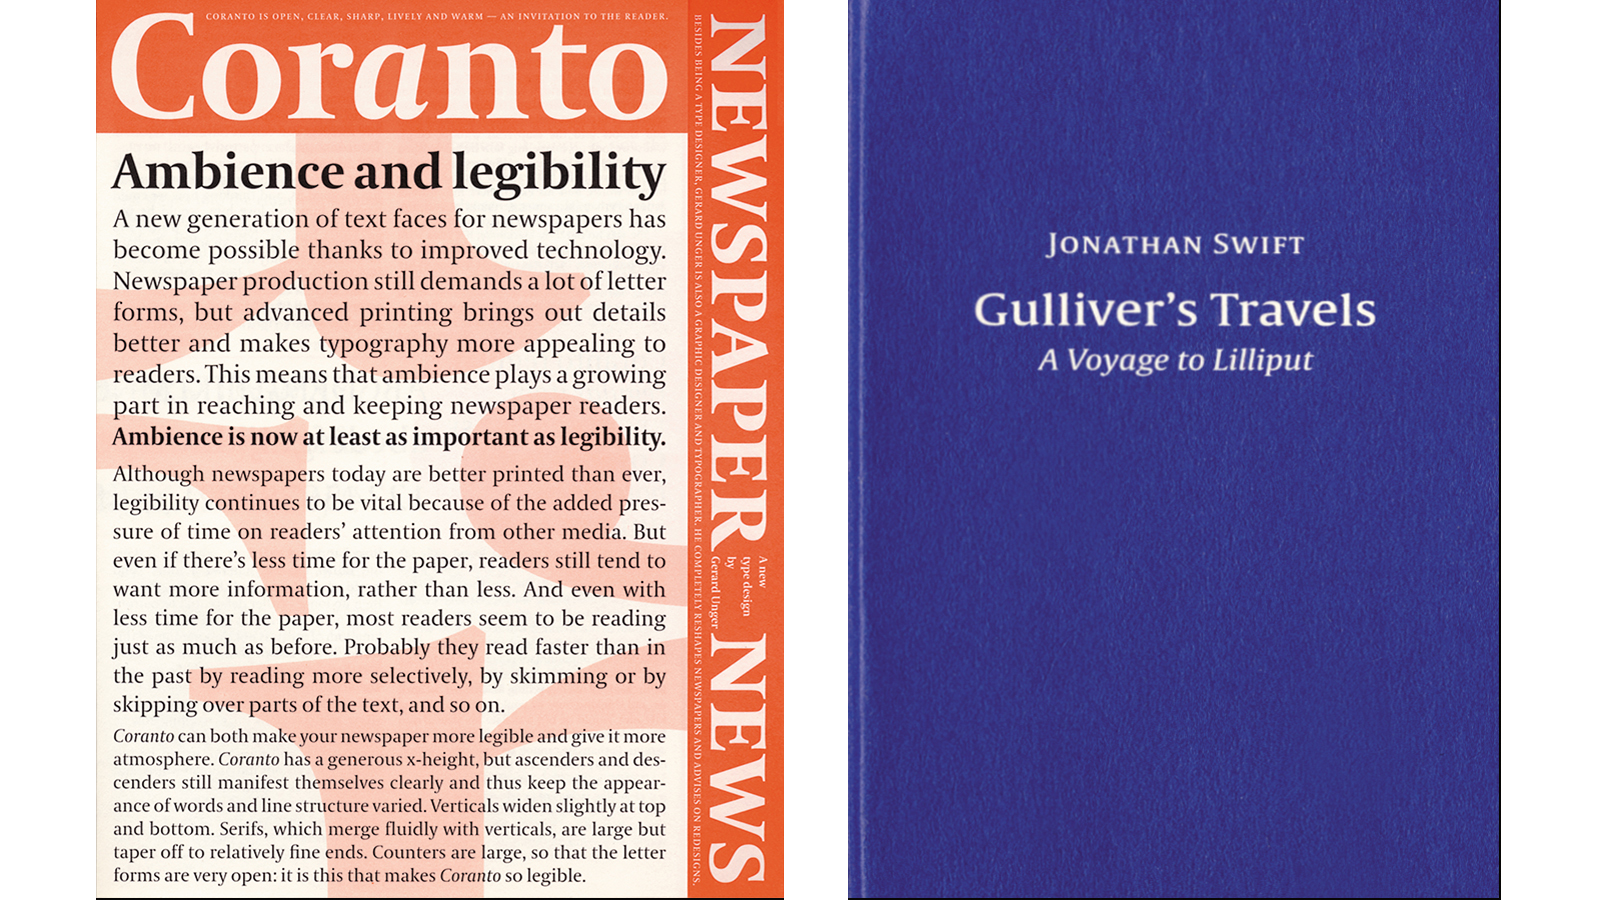 Gerard Unger, leaflet for Coranto and XS booklet for Gulliver